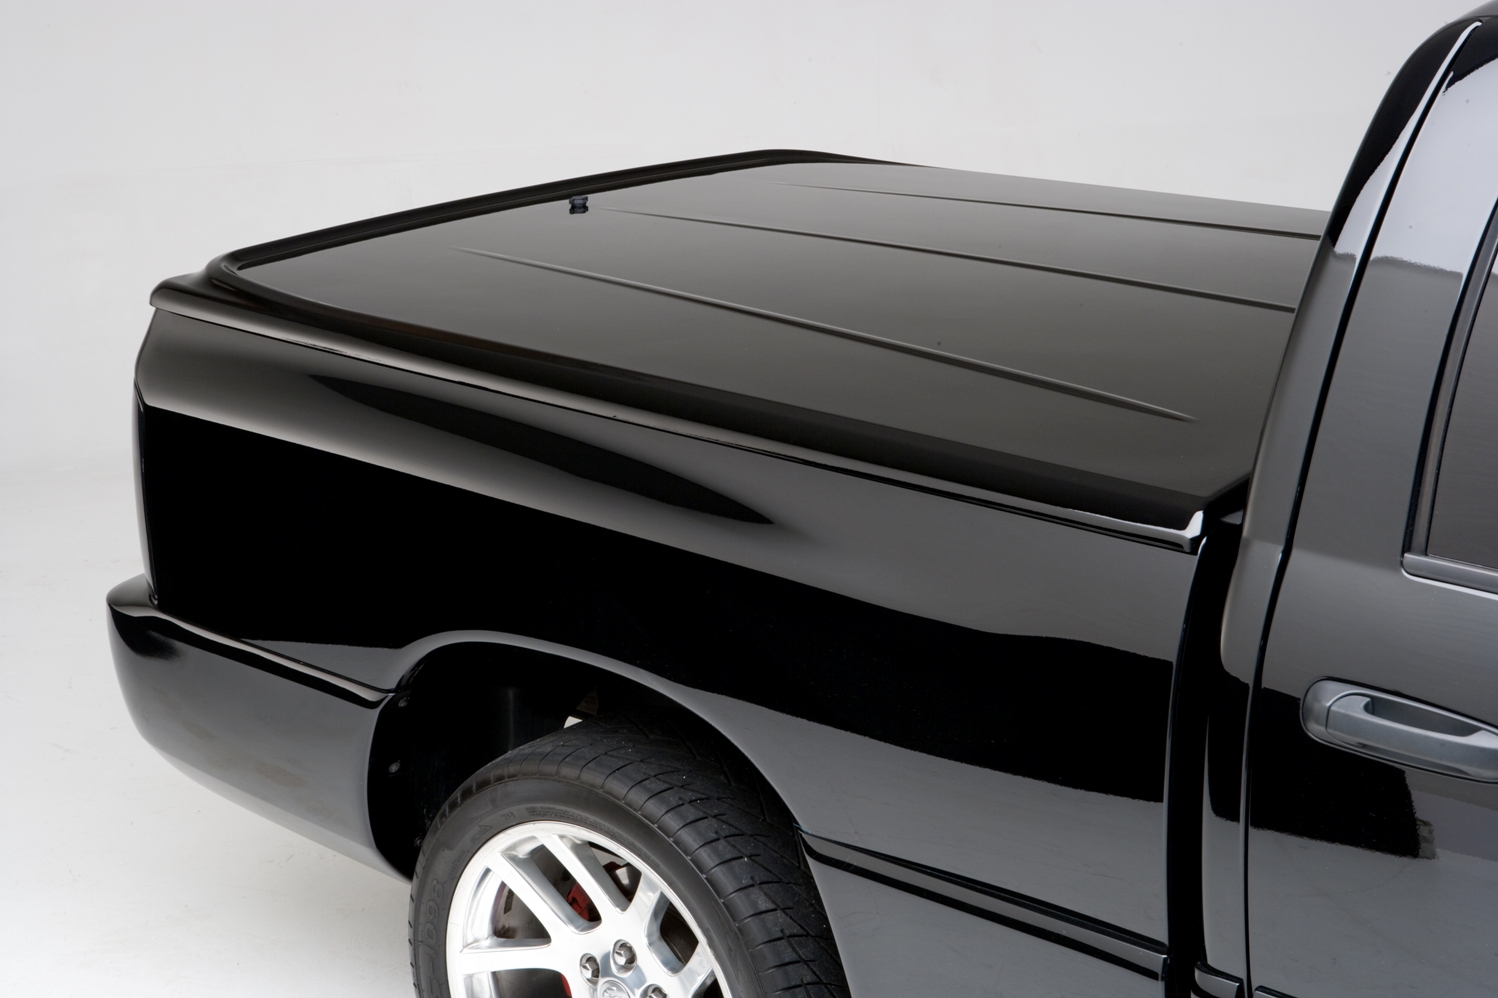 Undercover Se Tonneau Cover Truck Bed Cover The UnderCover LUX SE has been designed to be a low profile cover that ...